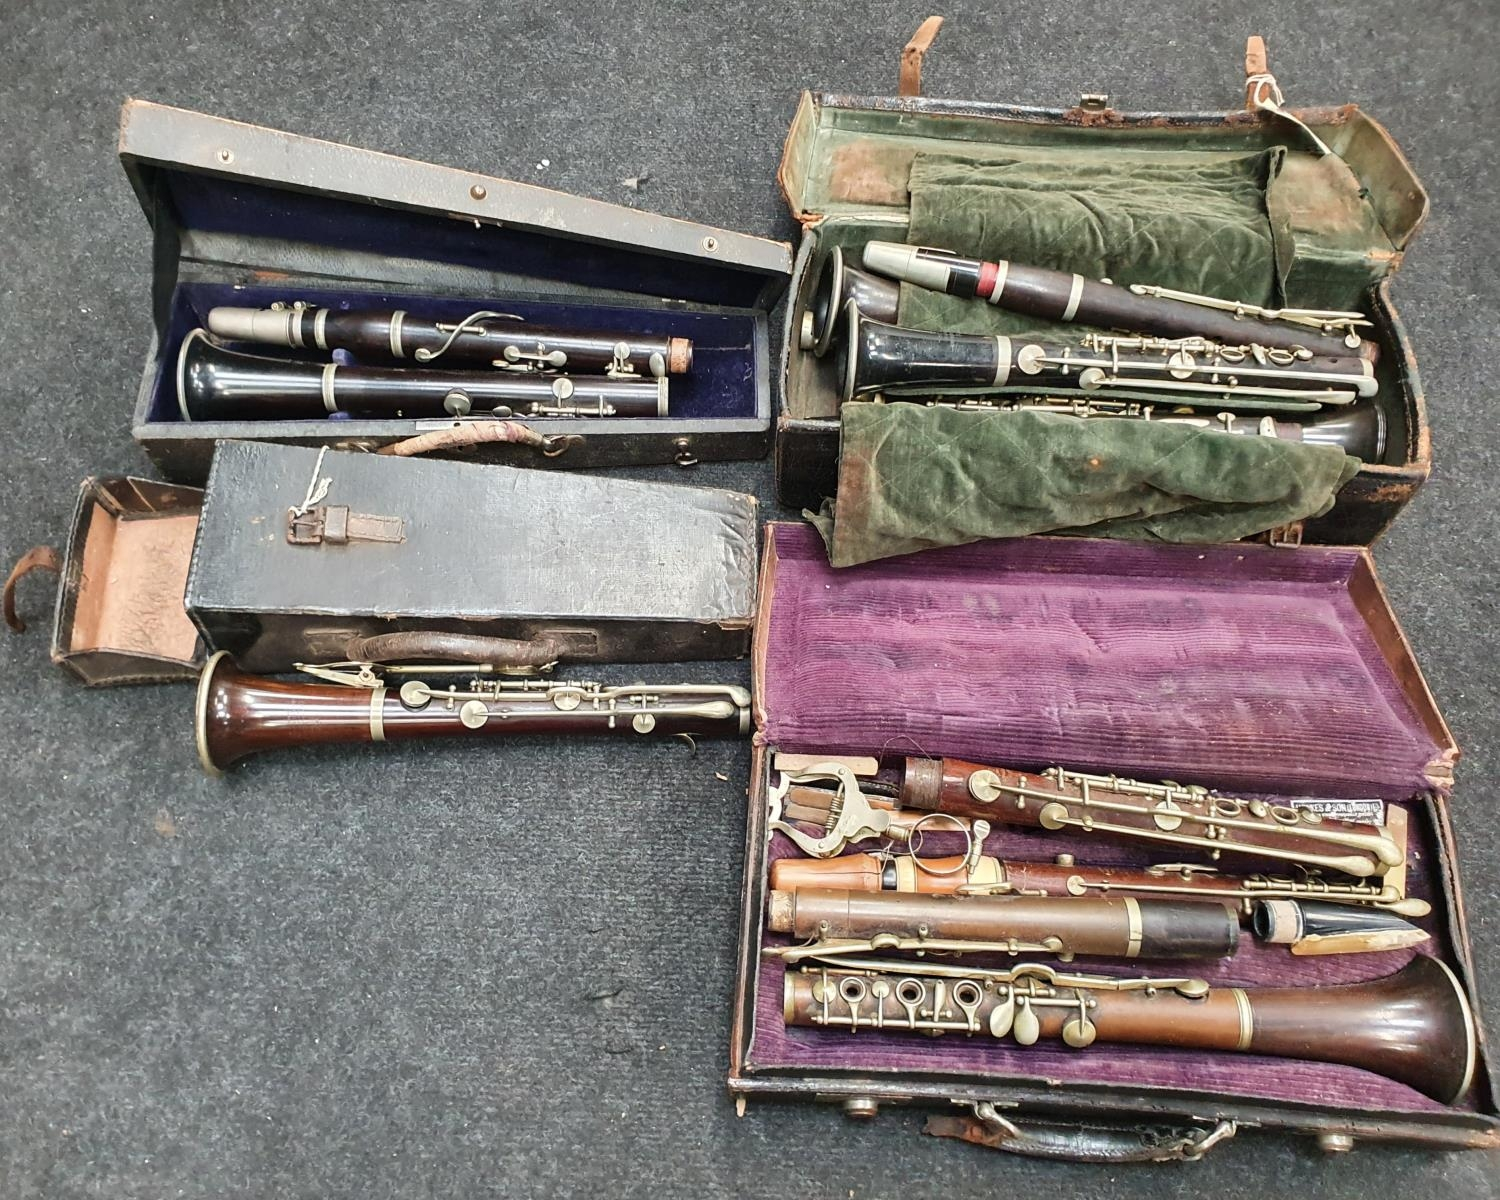 Case of vintage clarinets.